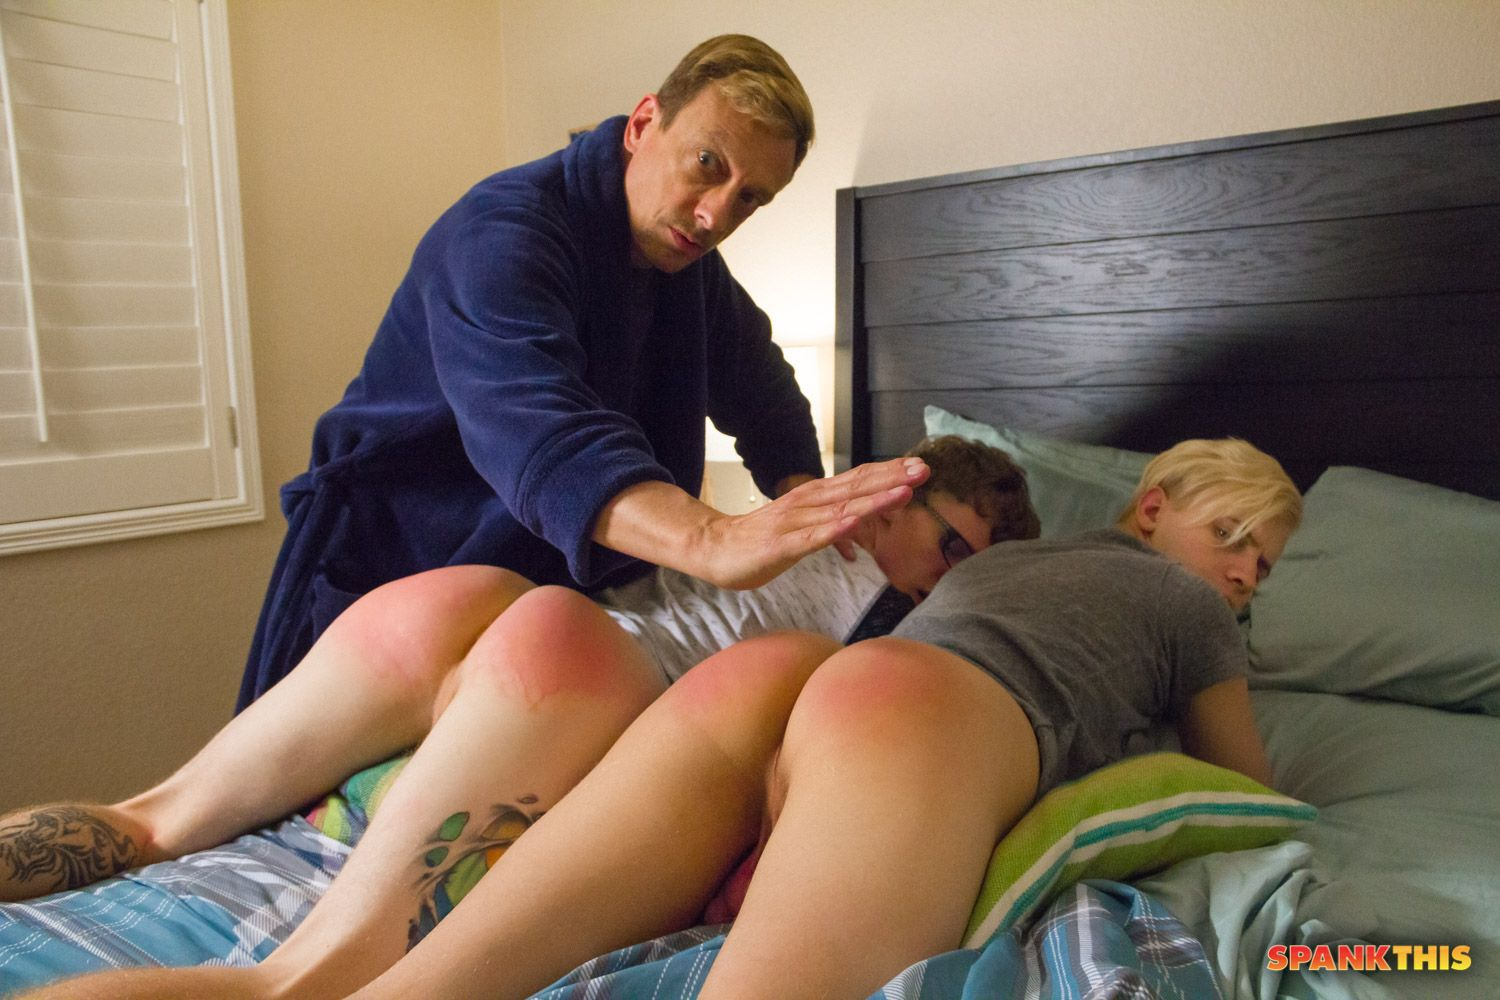 Man spanks stepdaughter and fucks in her friend's presence